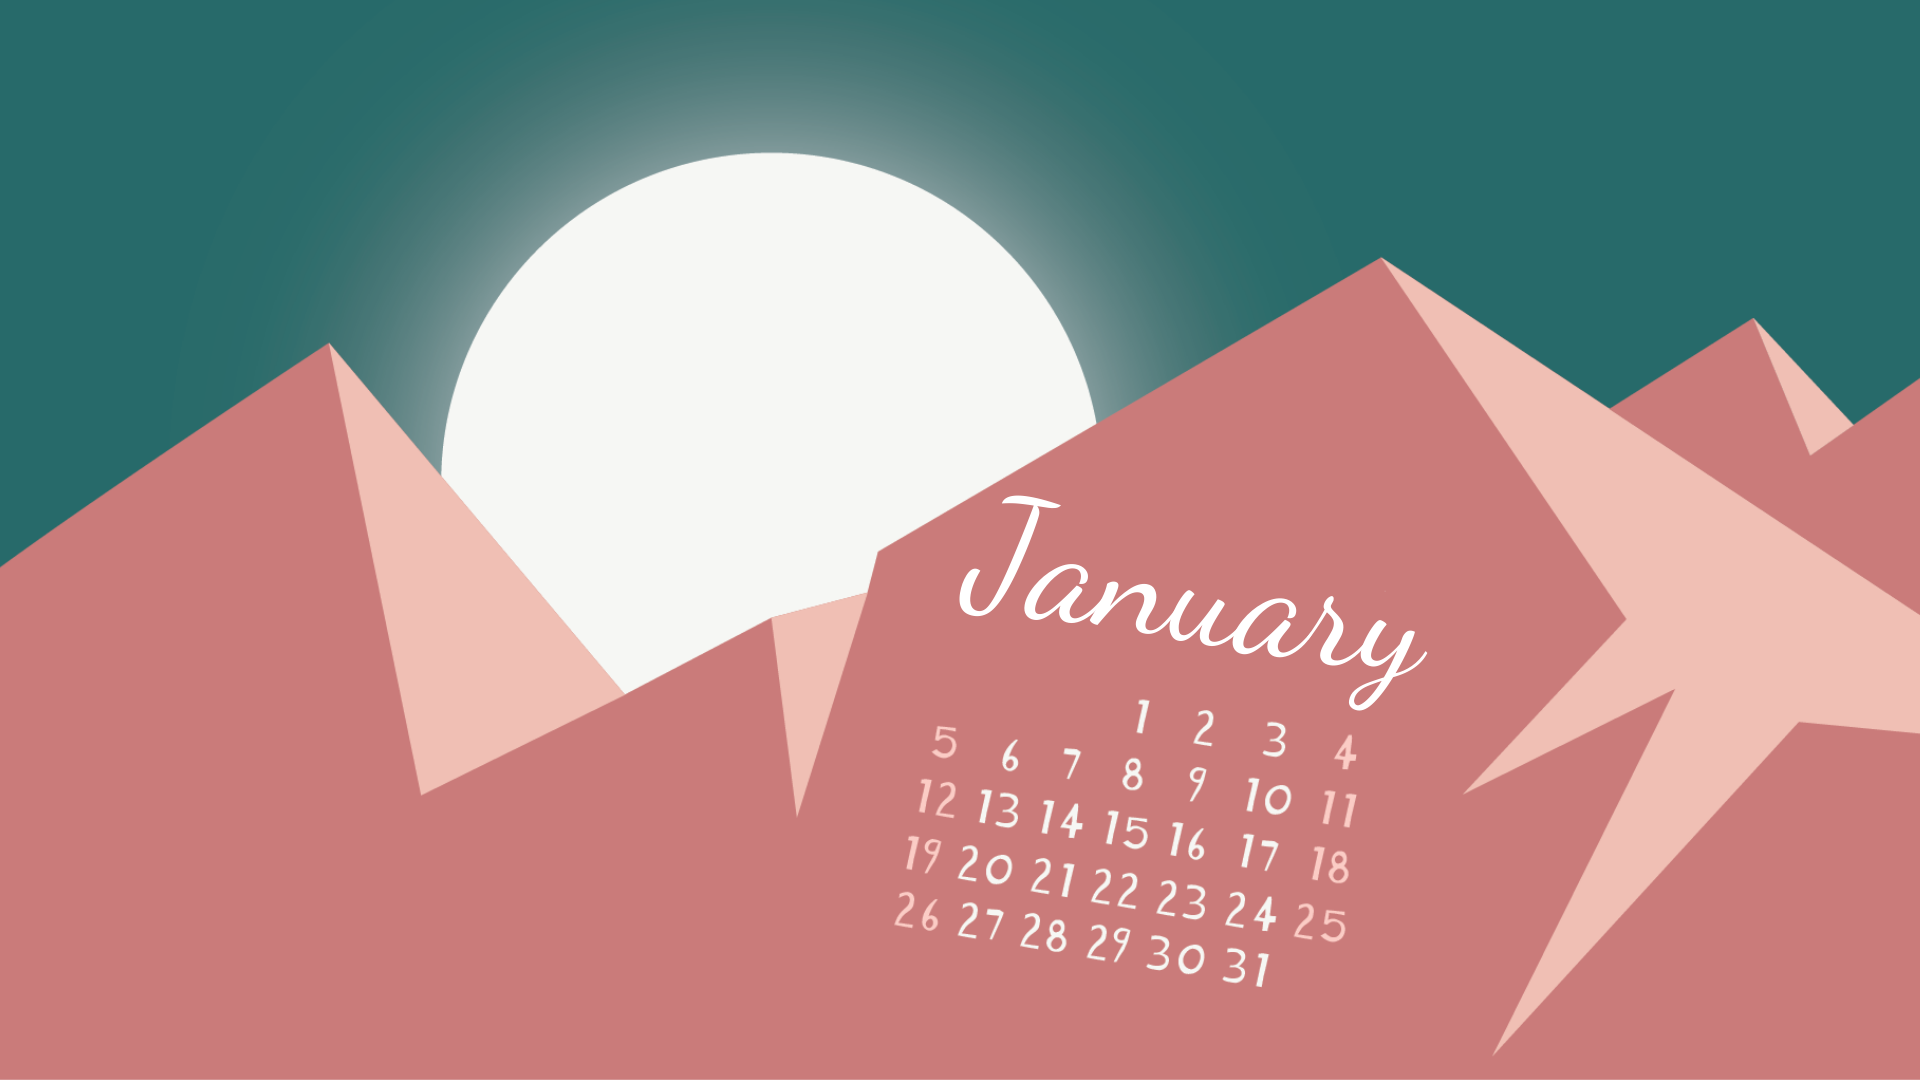 January 2020 Desktop Calendar Wallpapers Calendar 2020 1920x1080